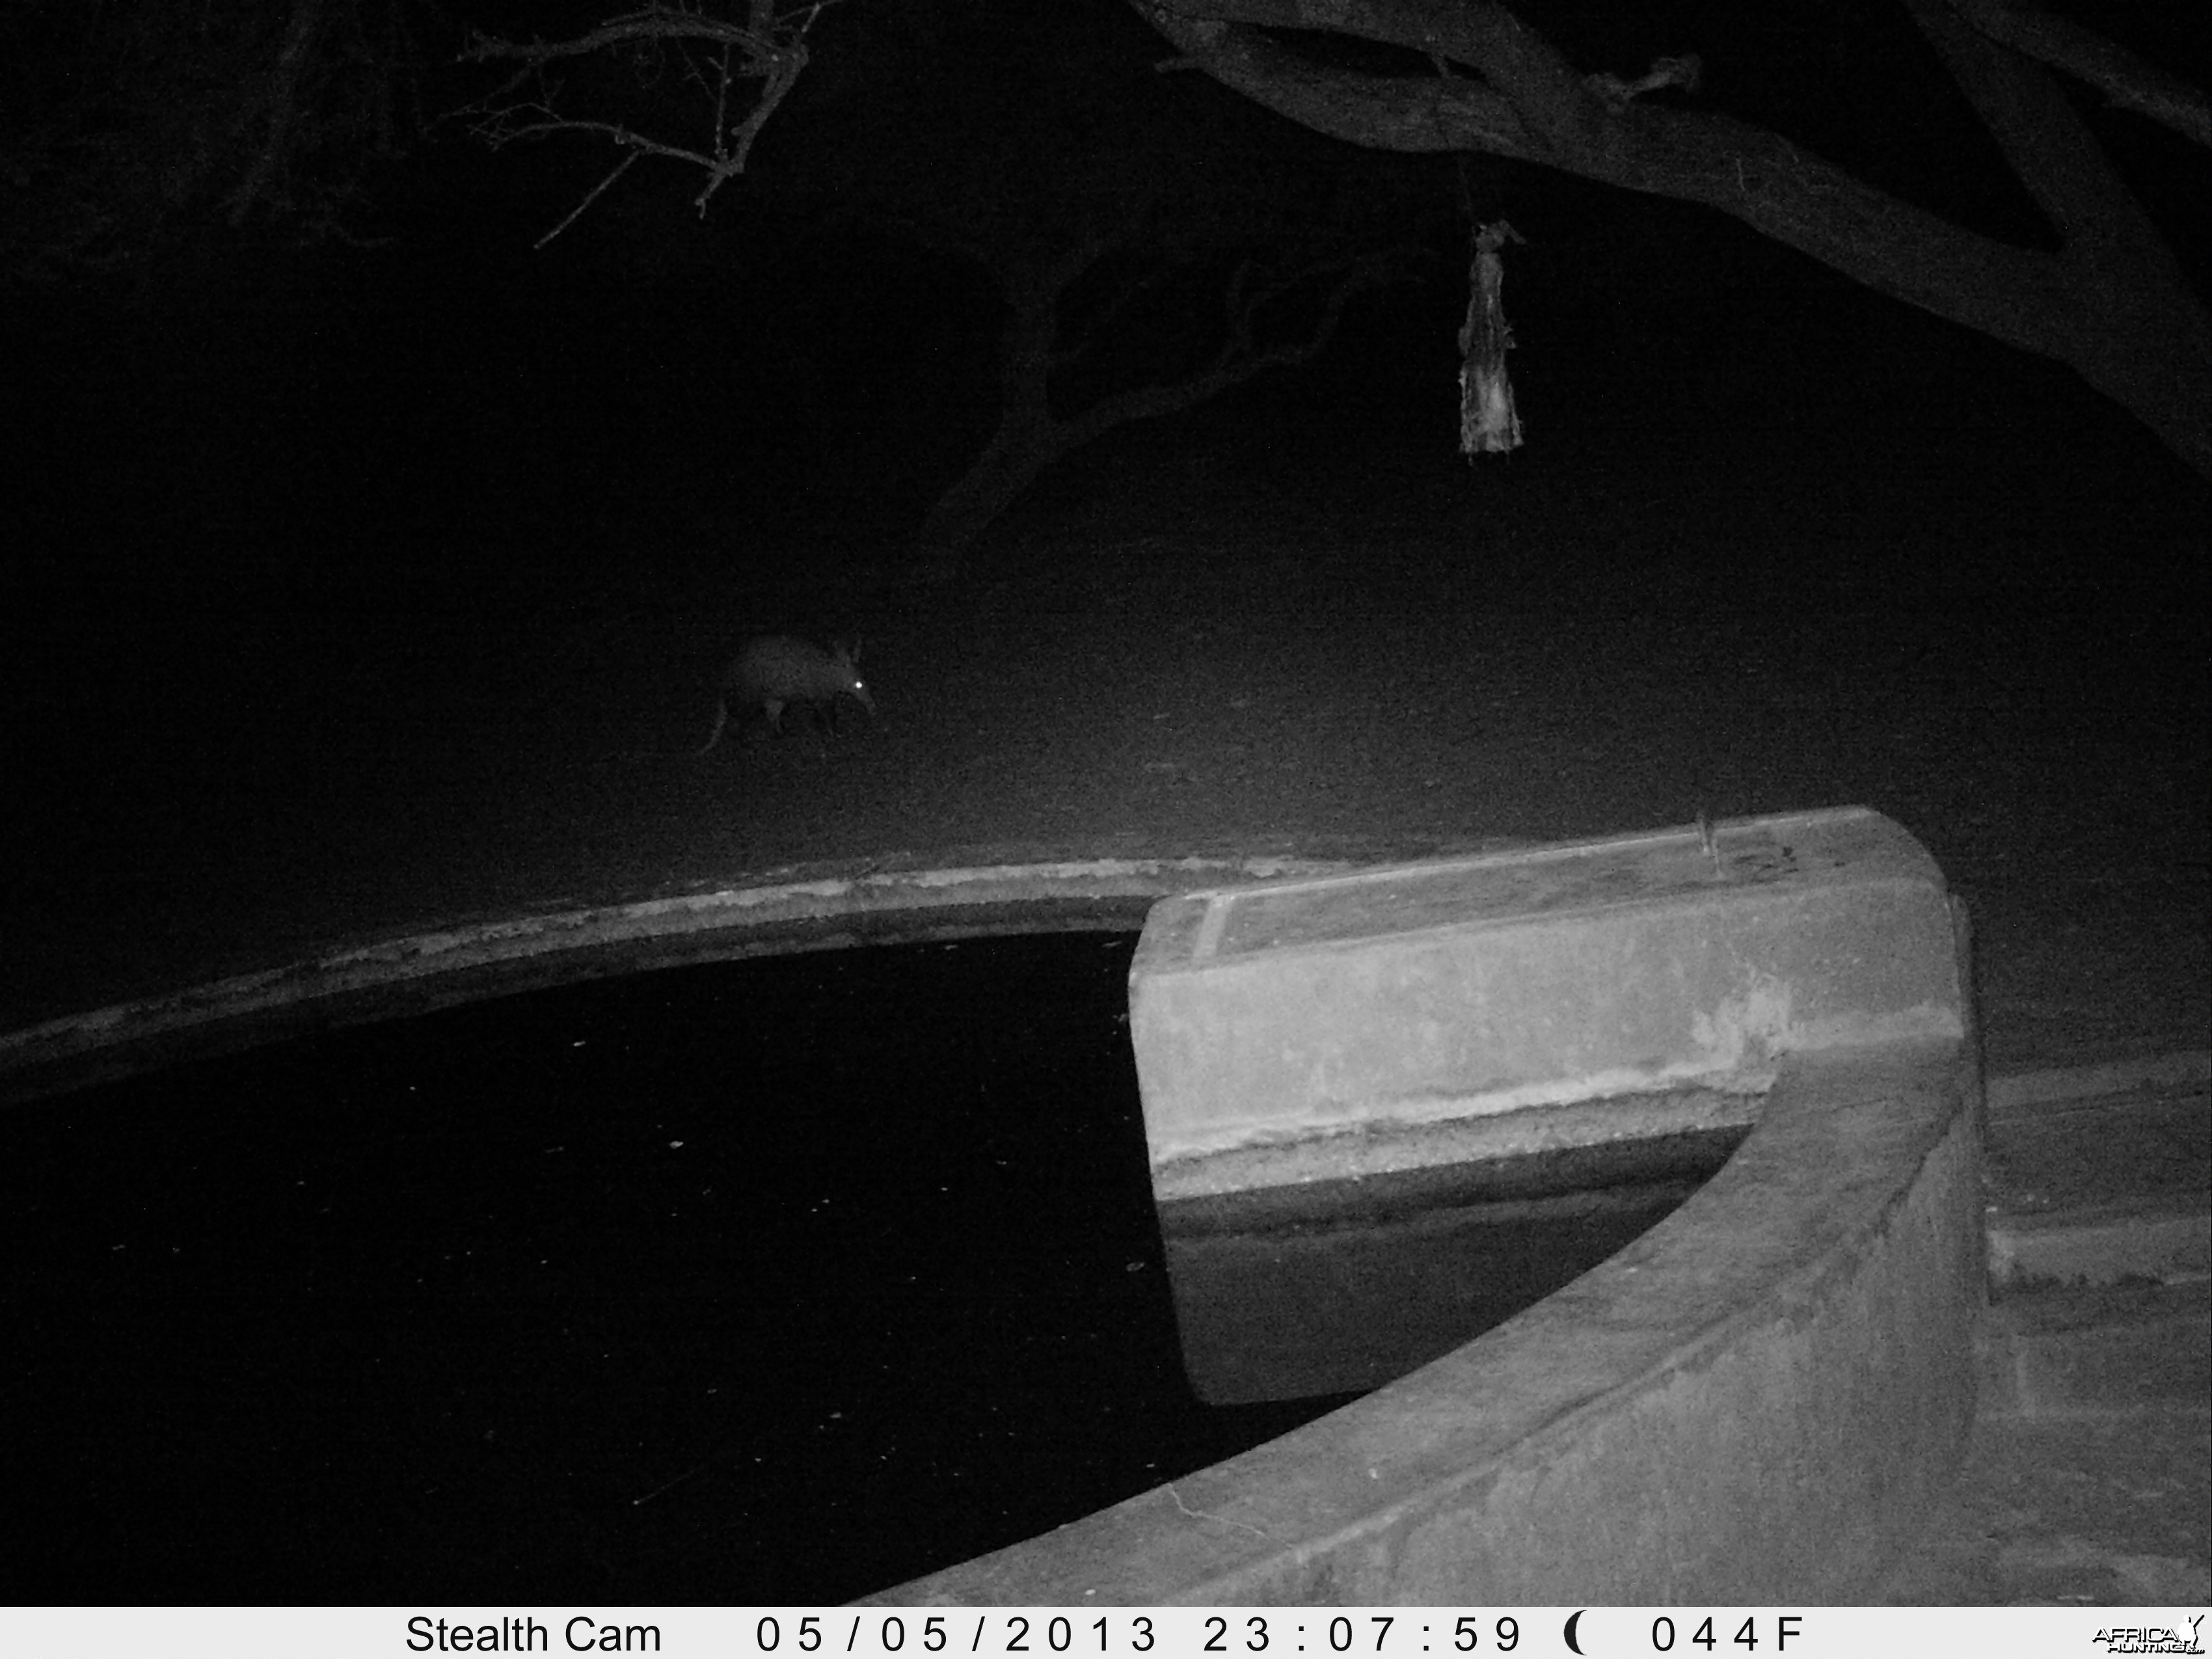 Aardvark or Antbear Trail Camera